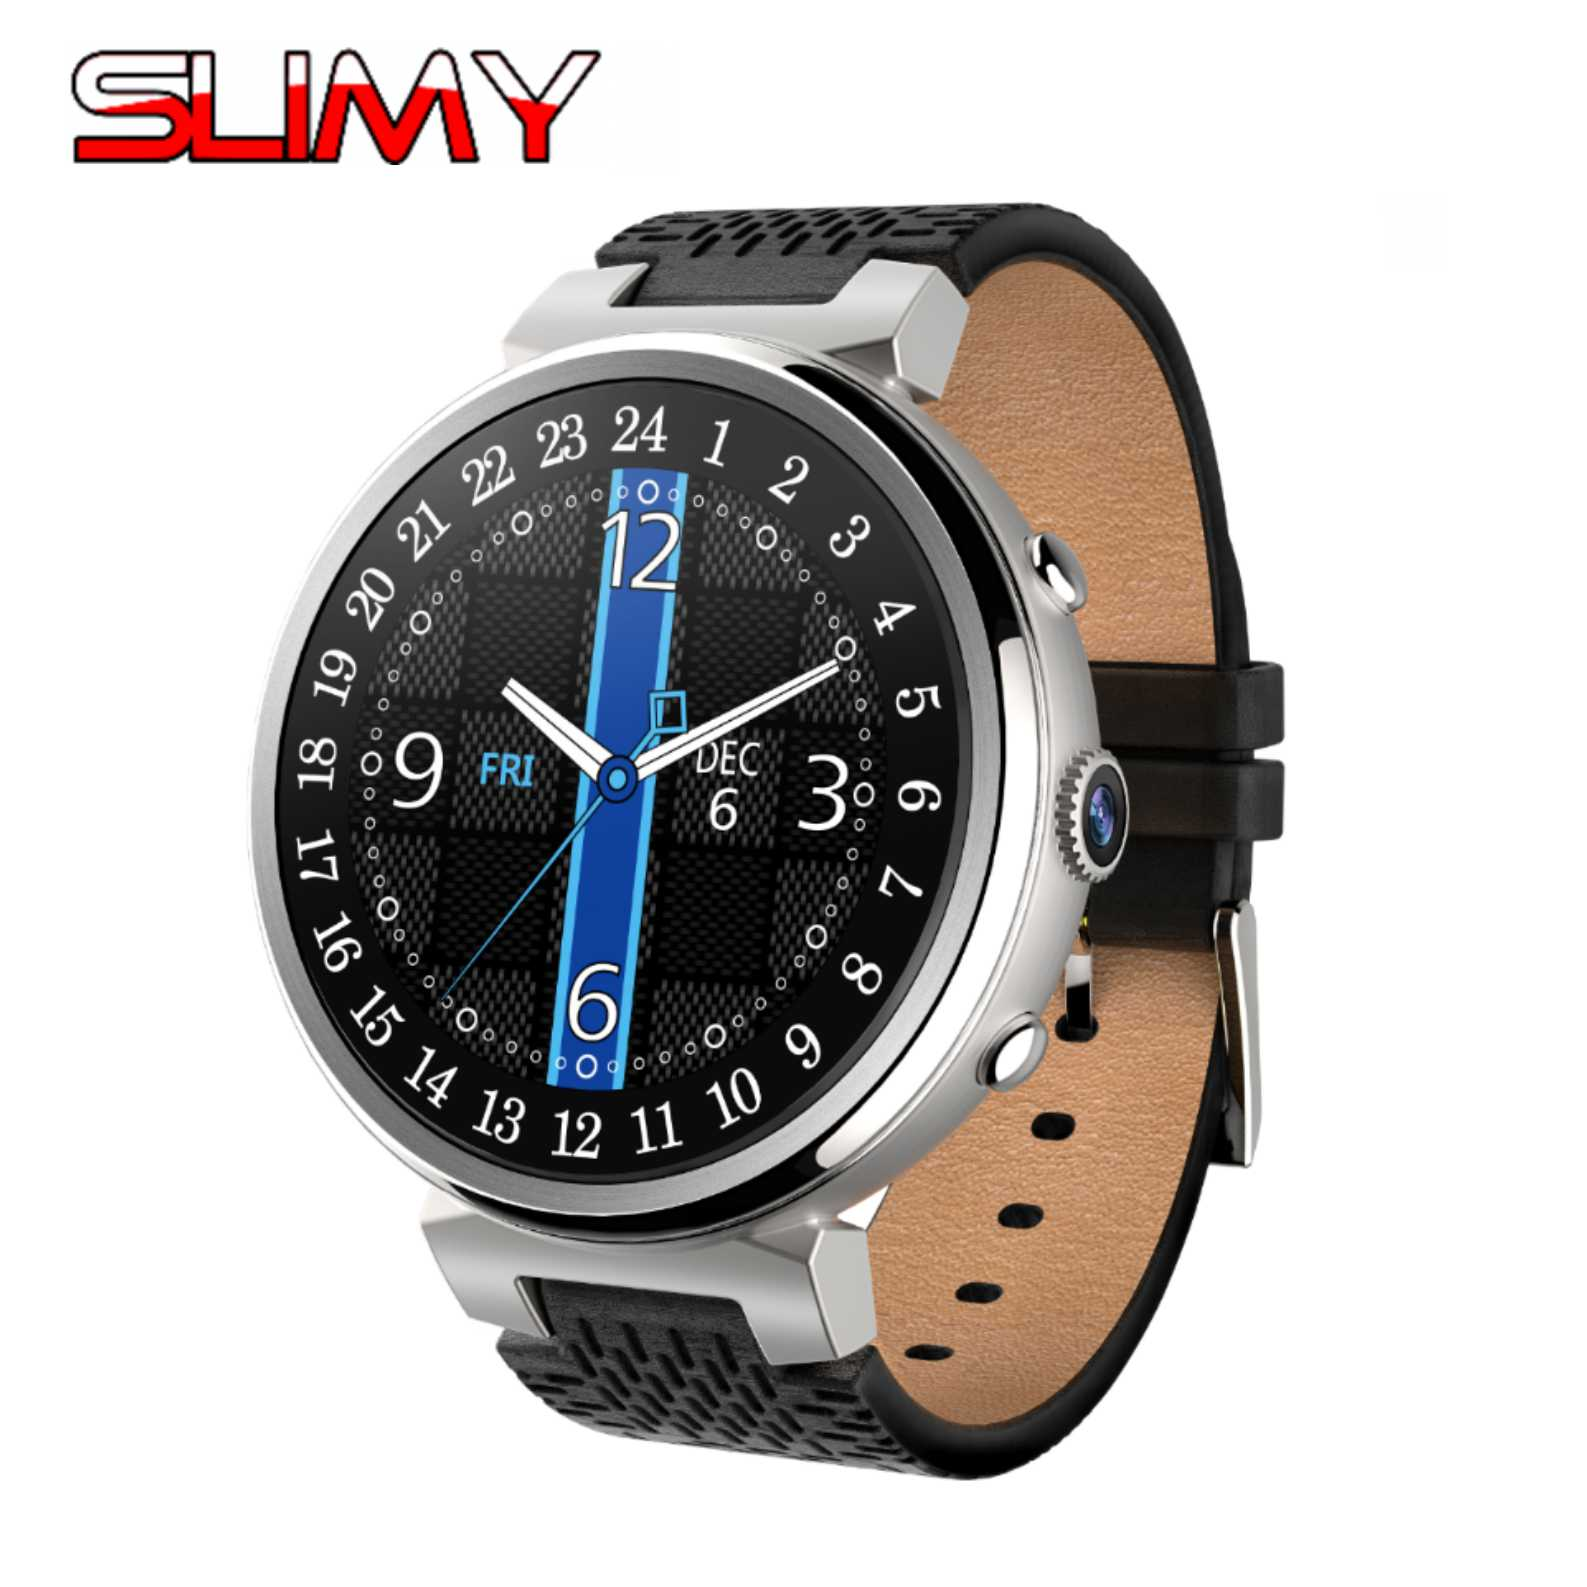 Slimy Smart Watch Android 5.1 OS MTK6580 2GB/16GB 2MP Camera Heart Rate Monitor Smartwatch Wifi 3G SIM Card GPS Smartwatch Men smart watch h1 android 5 1 os smartwatch mtk6572 512mb 4gb gps sim 3g heart rate monitor camera waterproof sports wristwatch